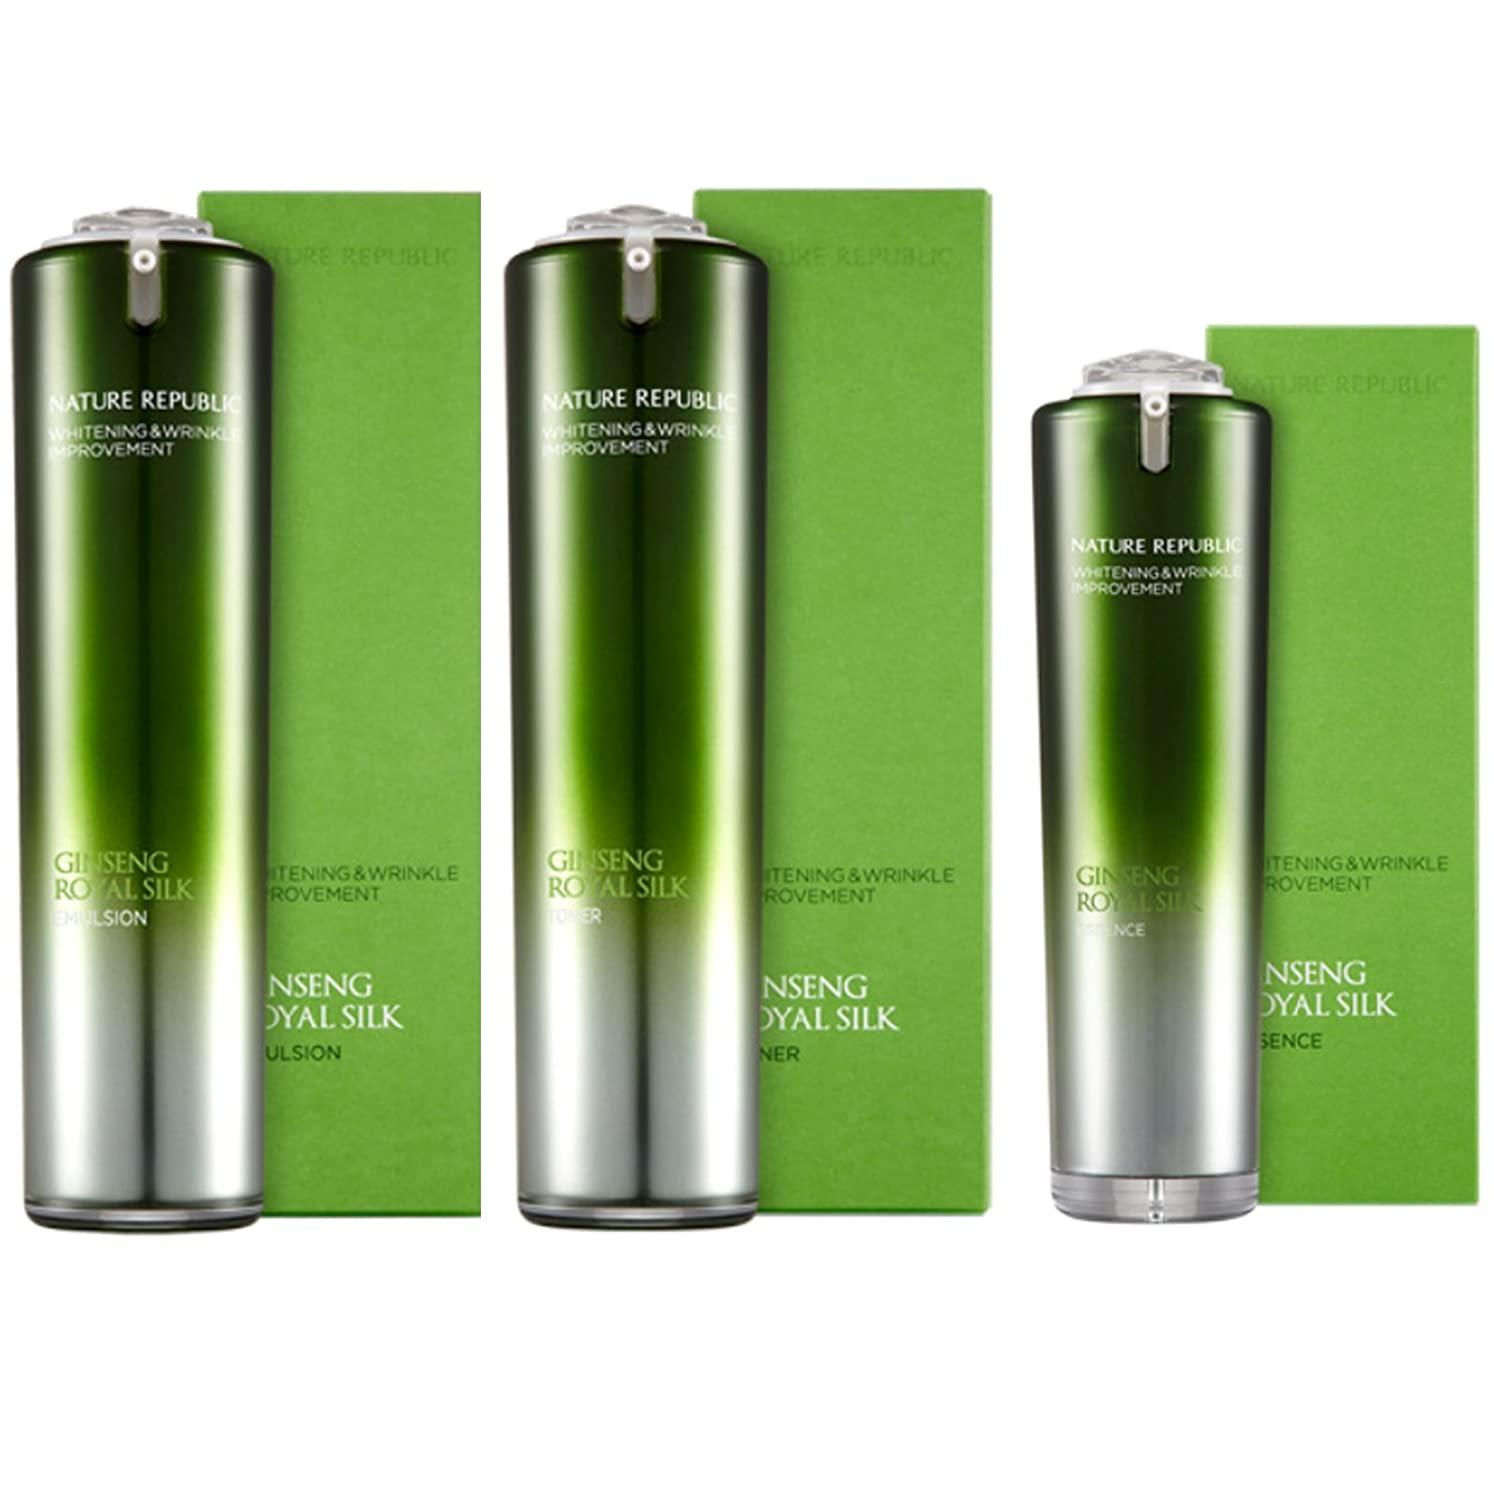 騒乱拮抗露[韓国 Nature Republic] Nature Republic Ginseng Royal Jelly Silk トナー 乳剤 エッセンス セットゴールドホワイトニングリンクルしっとり弾力性改善 (Nature Republic Ginseng Royal Jelly Silk Toner Emulsion Essence Set Gold Whitening Wrinkle Moist Elasticity Improvement) [並行輸入品]